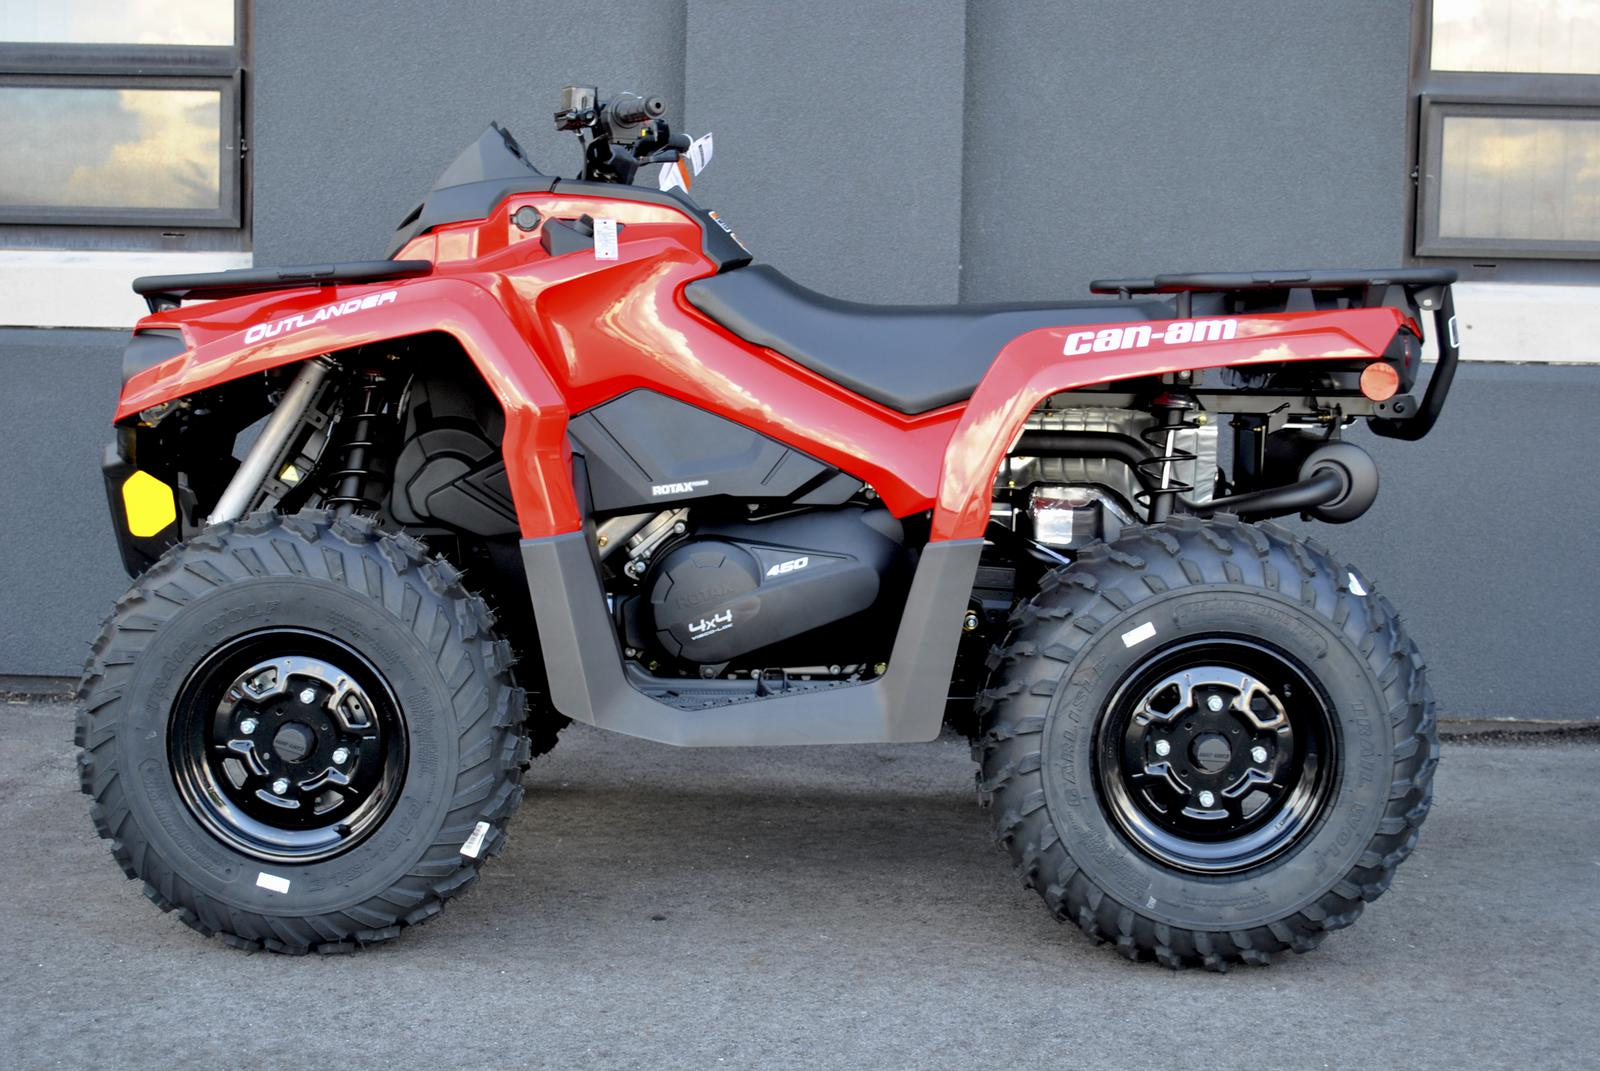 Inventory from Can-Am and Indian Motorcycle Flat Out